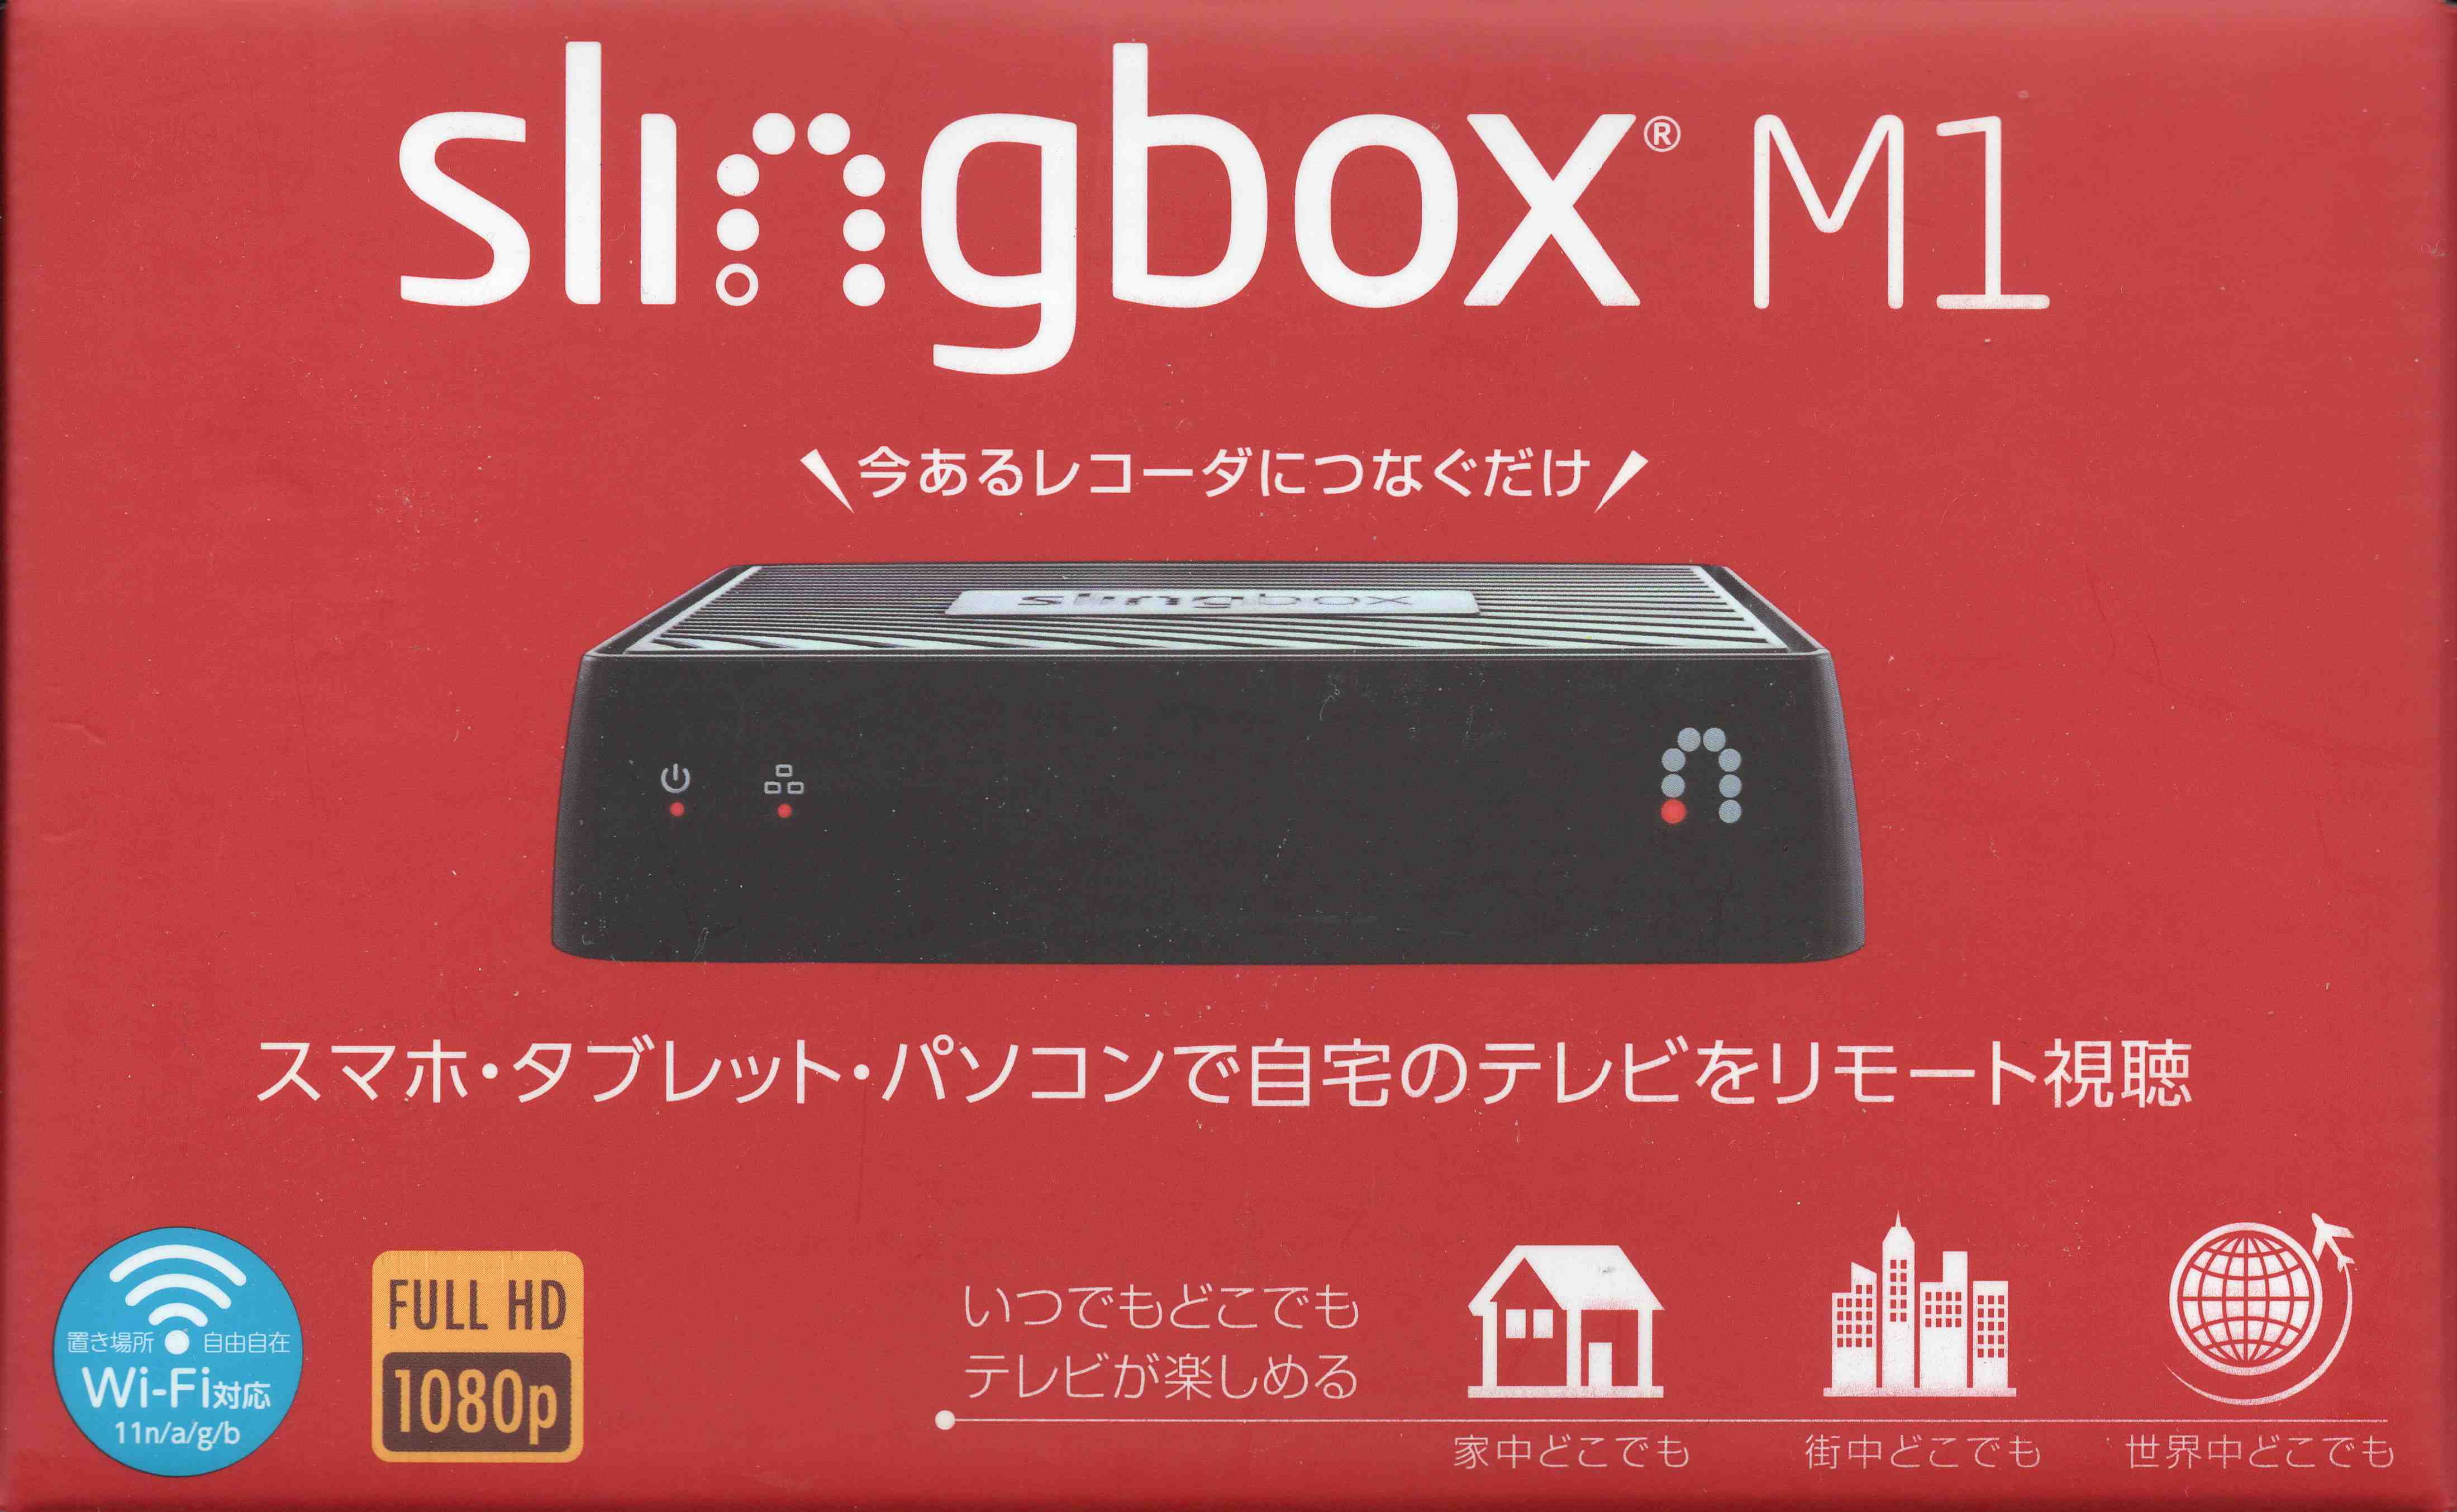 INTO THE NEXT STAGE: Slingbox Succeeds for Watching Japanese TV in